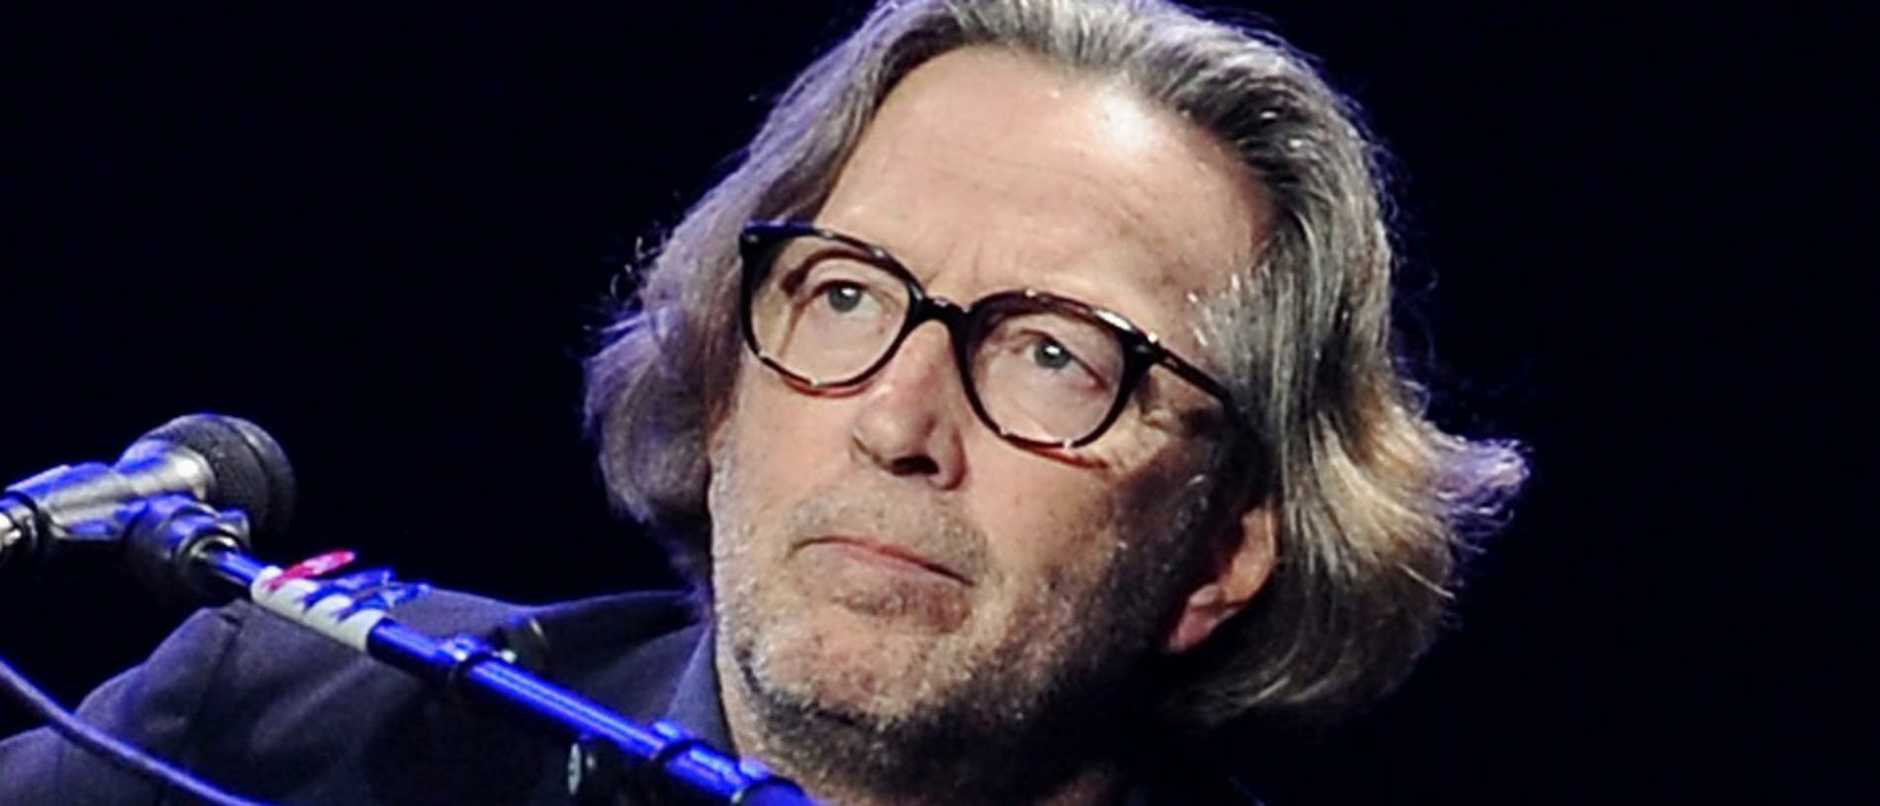 Guitarist Eric Clapton performs in concert at Madison Square Garden on Thursday, Feb. 18, 2010 in New York. (AP Photo/Evan Agostini)